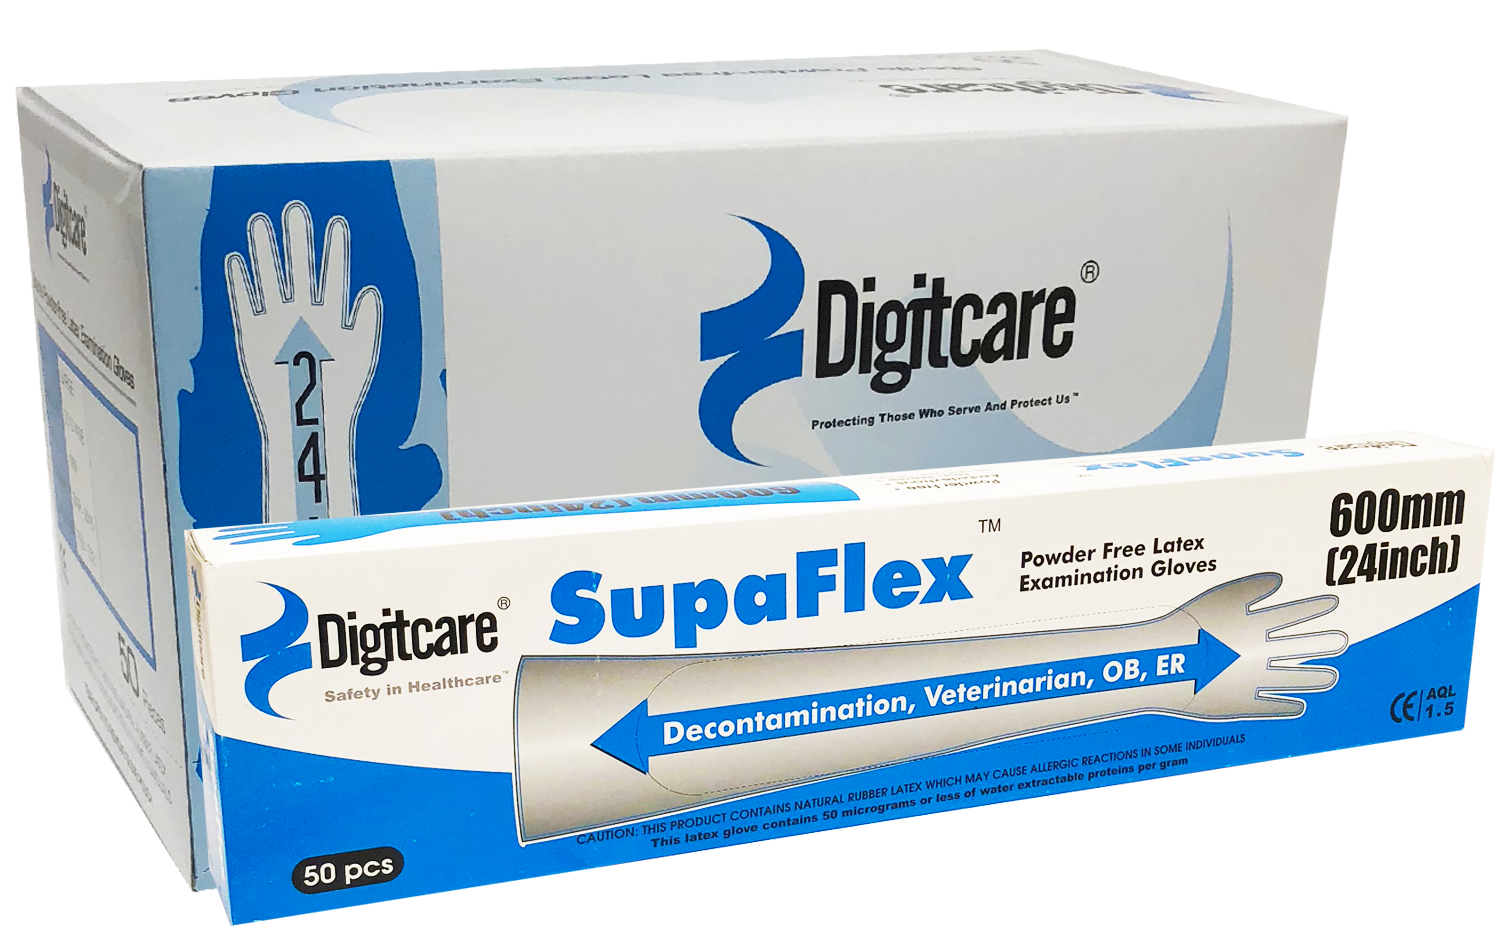 SupaFlex Powder-Free Latex Exam Gloves